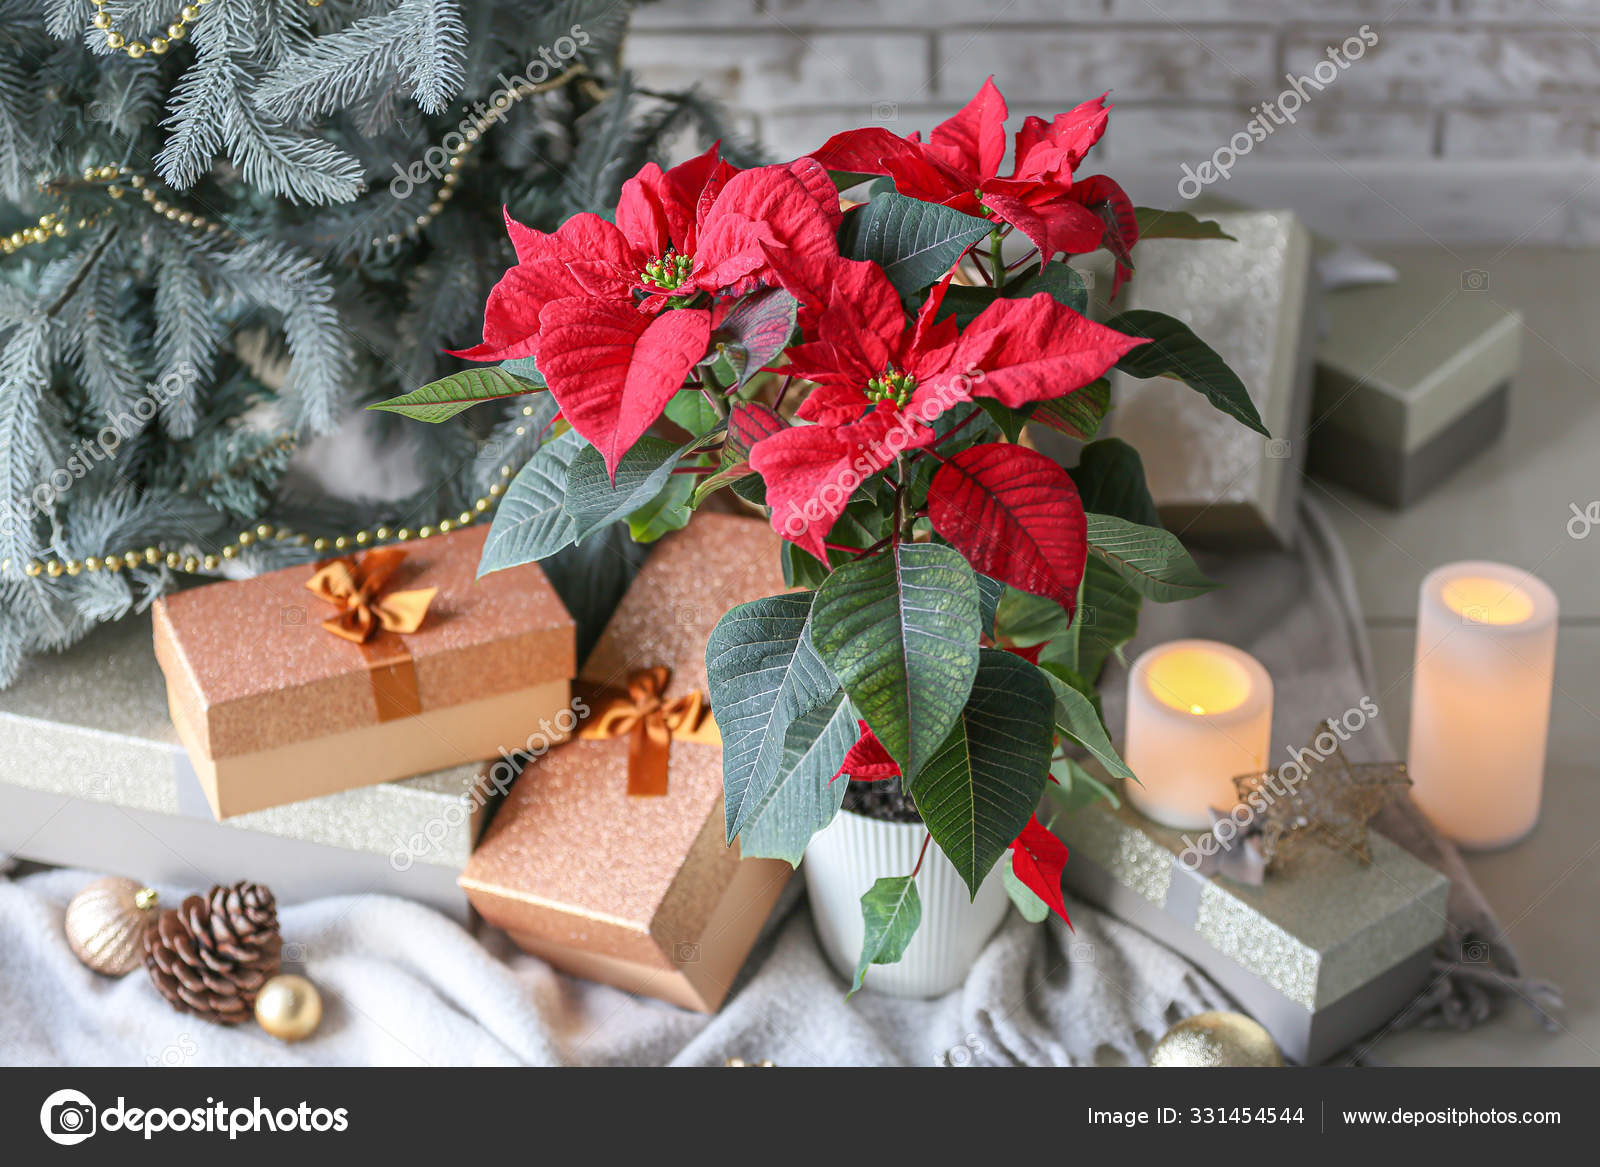 Plant poinsettia and gift boxes near